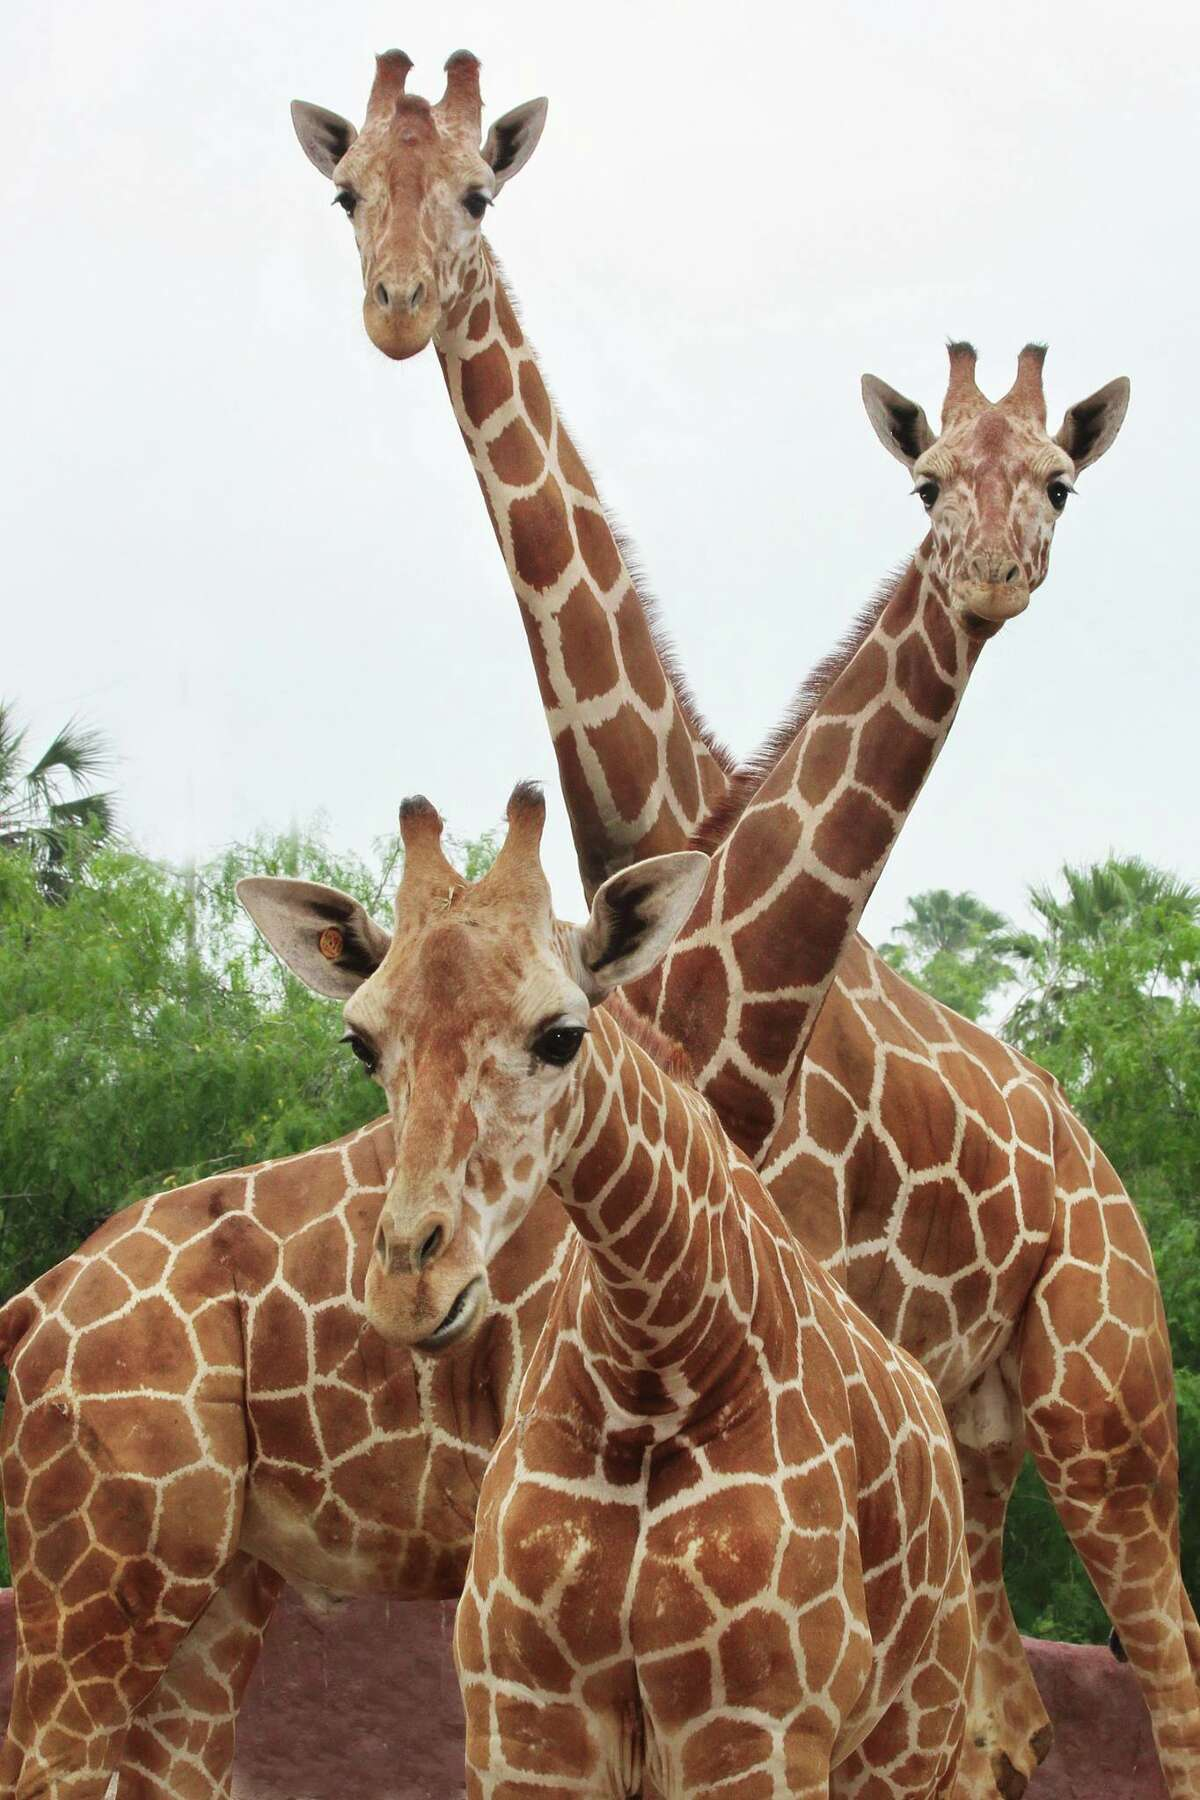 The San Antonio Zoo posted this photo to Facebook Monday, June 22, 2015, saying,